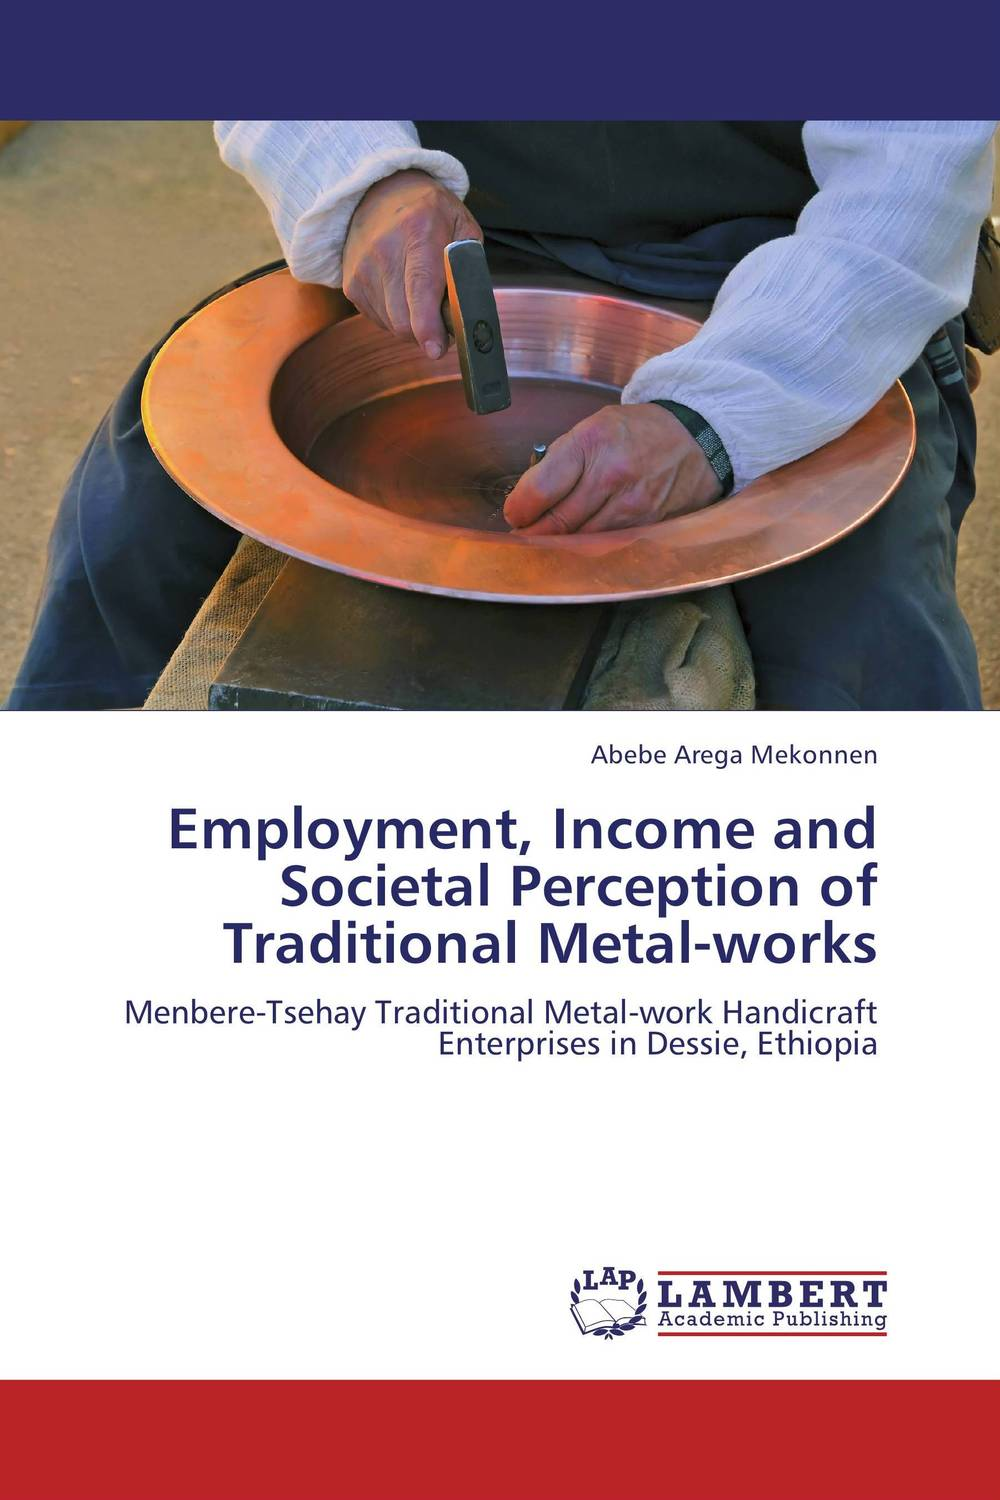 Employment, Income and Societal Perception of Traditional Metal-works